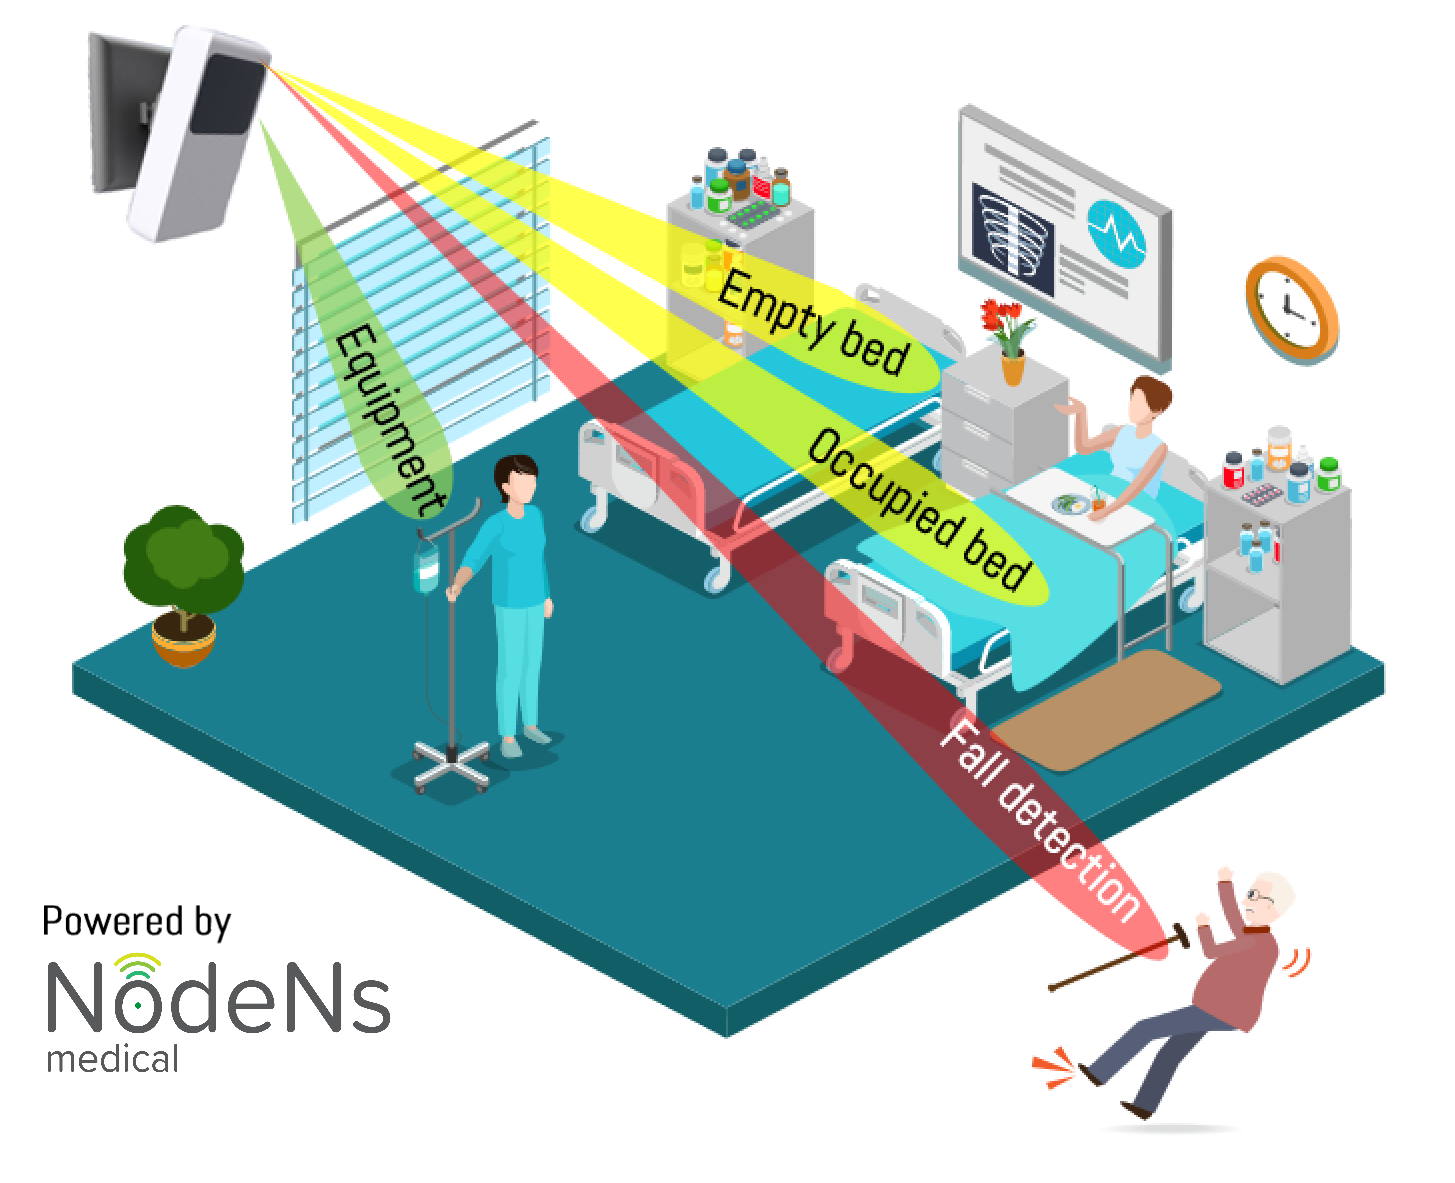 A NodeNs sensor can reliably measure all objects in a hospital room to the nearest cm